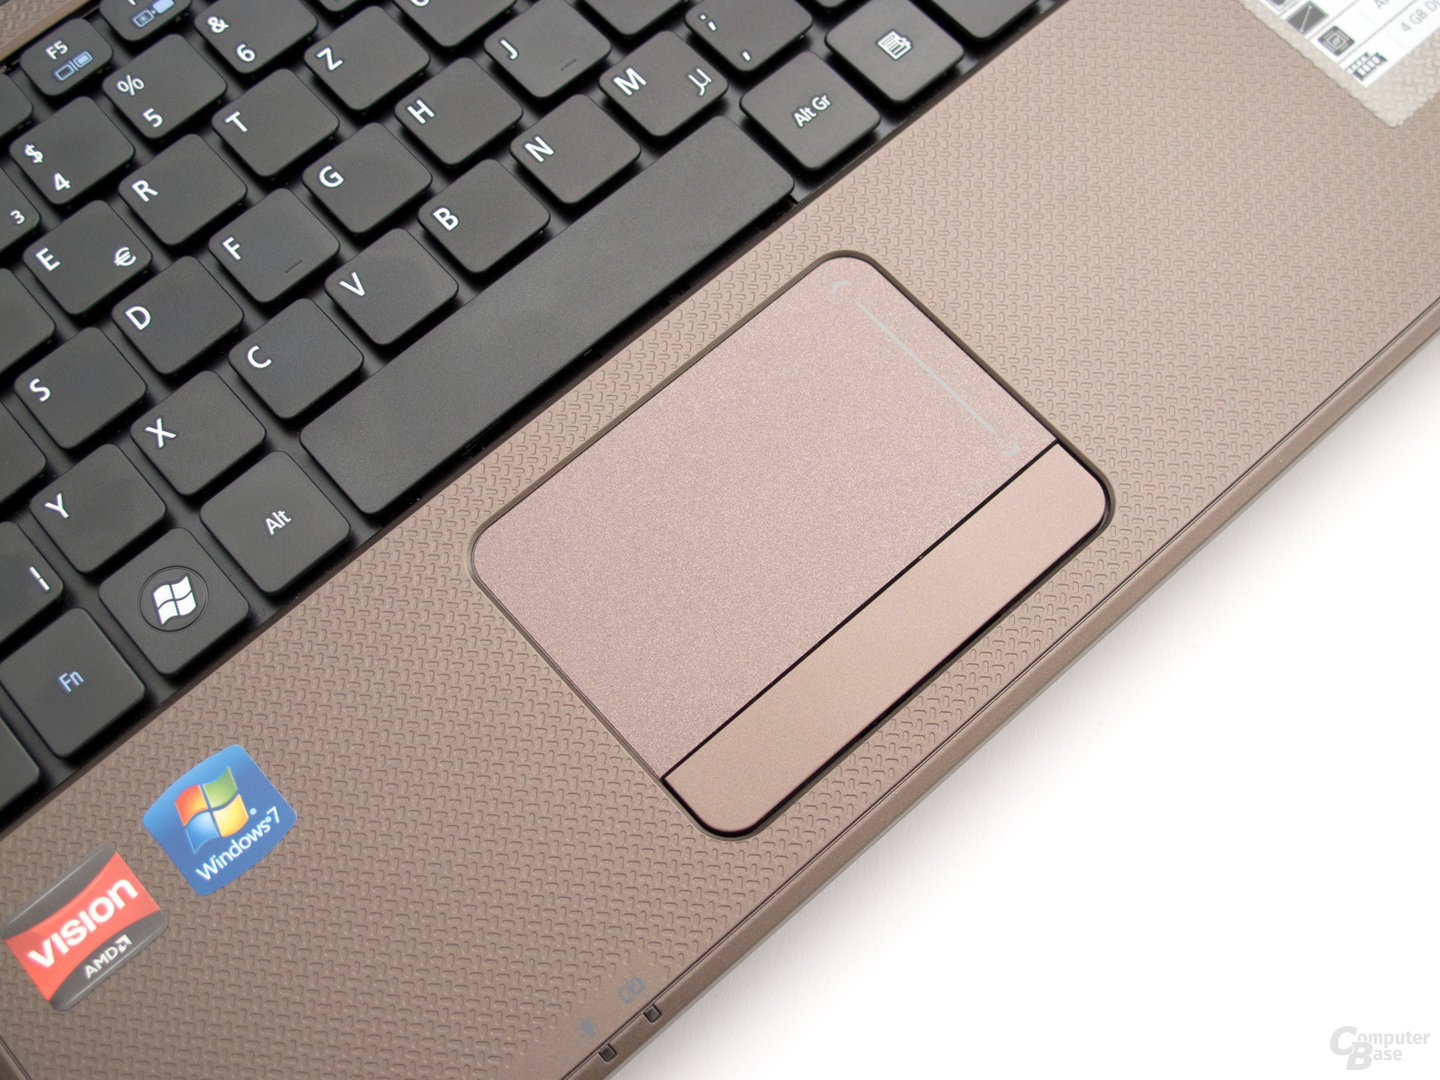 Acer Aspire 5253: Touchpad